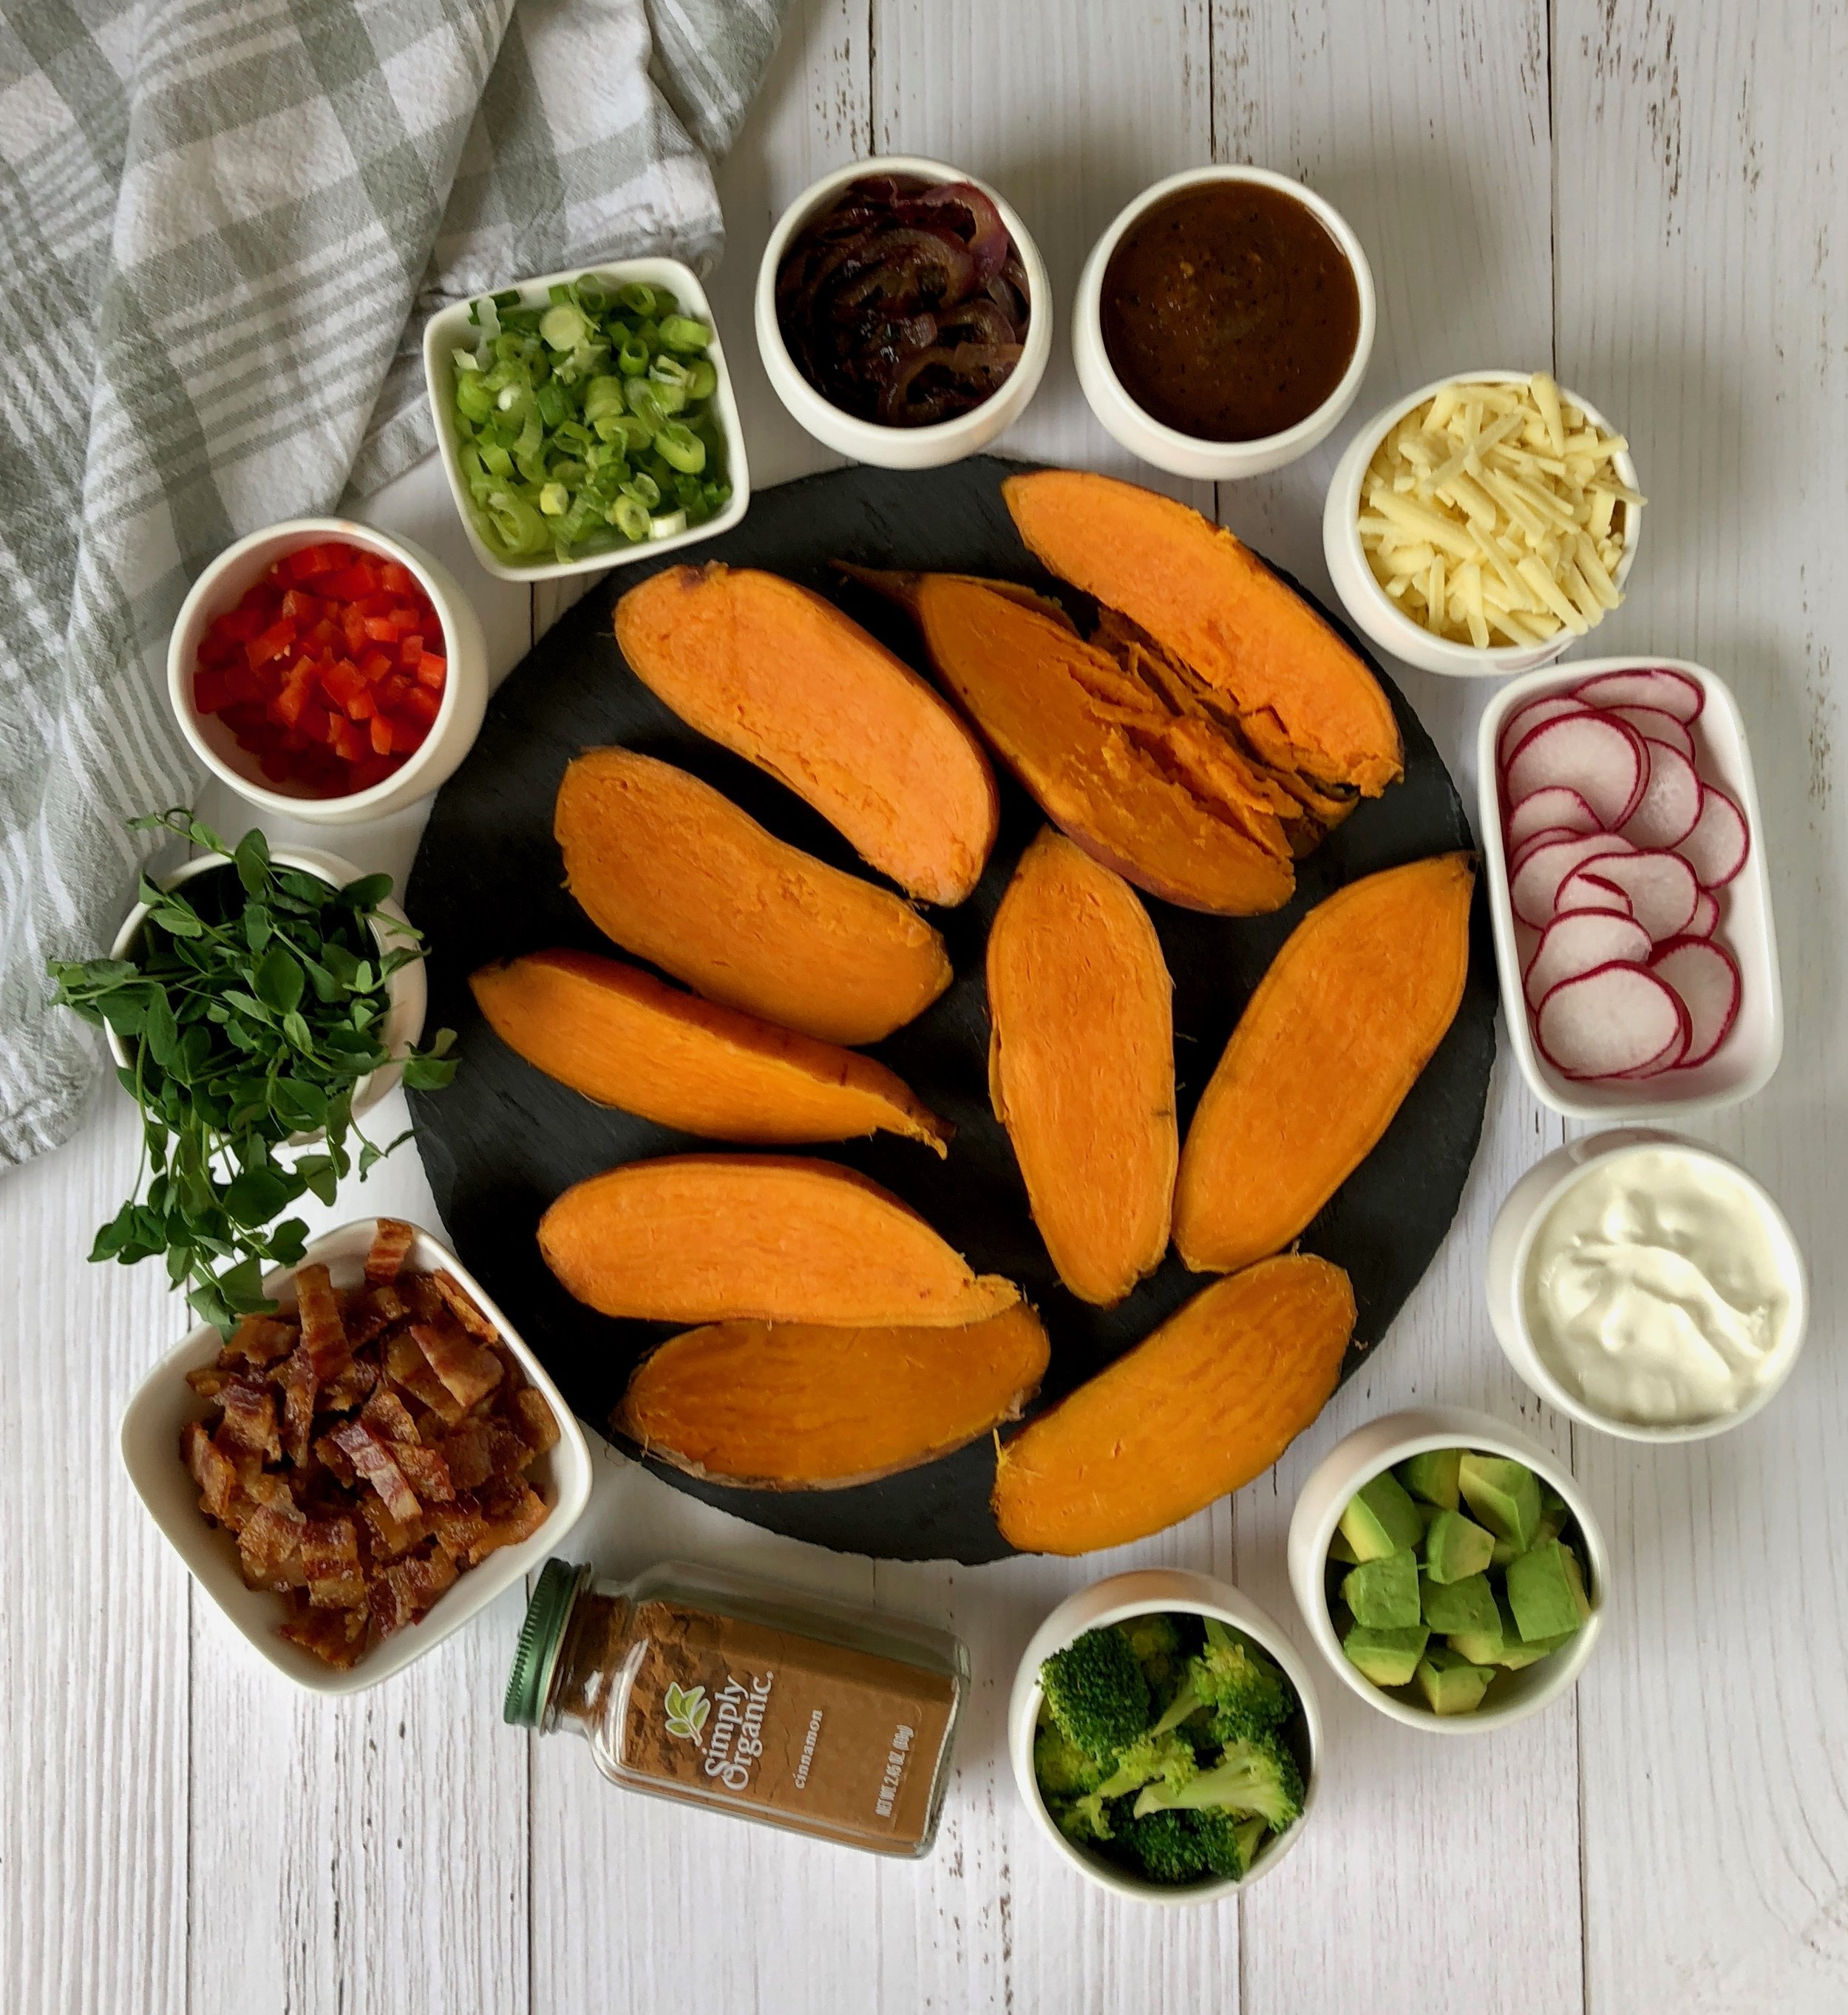 DIY Sweet Potato Bar